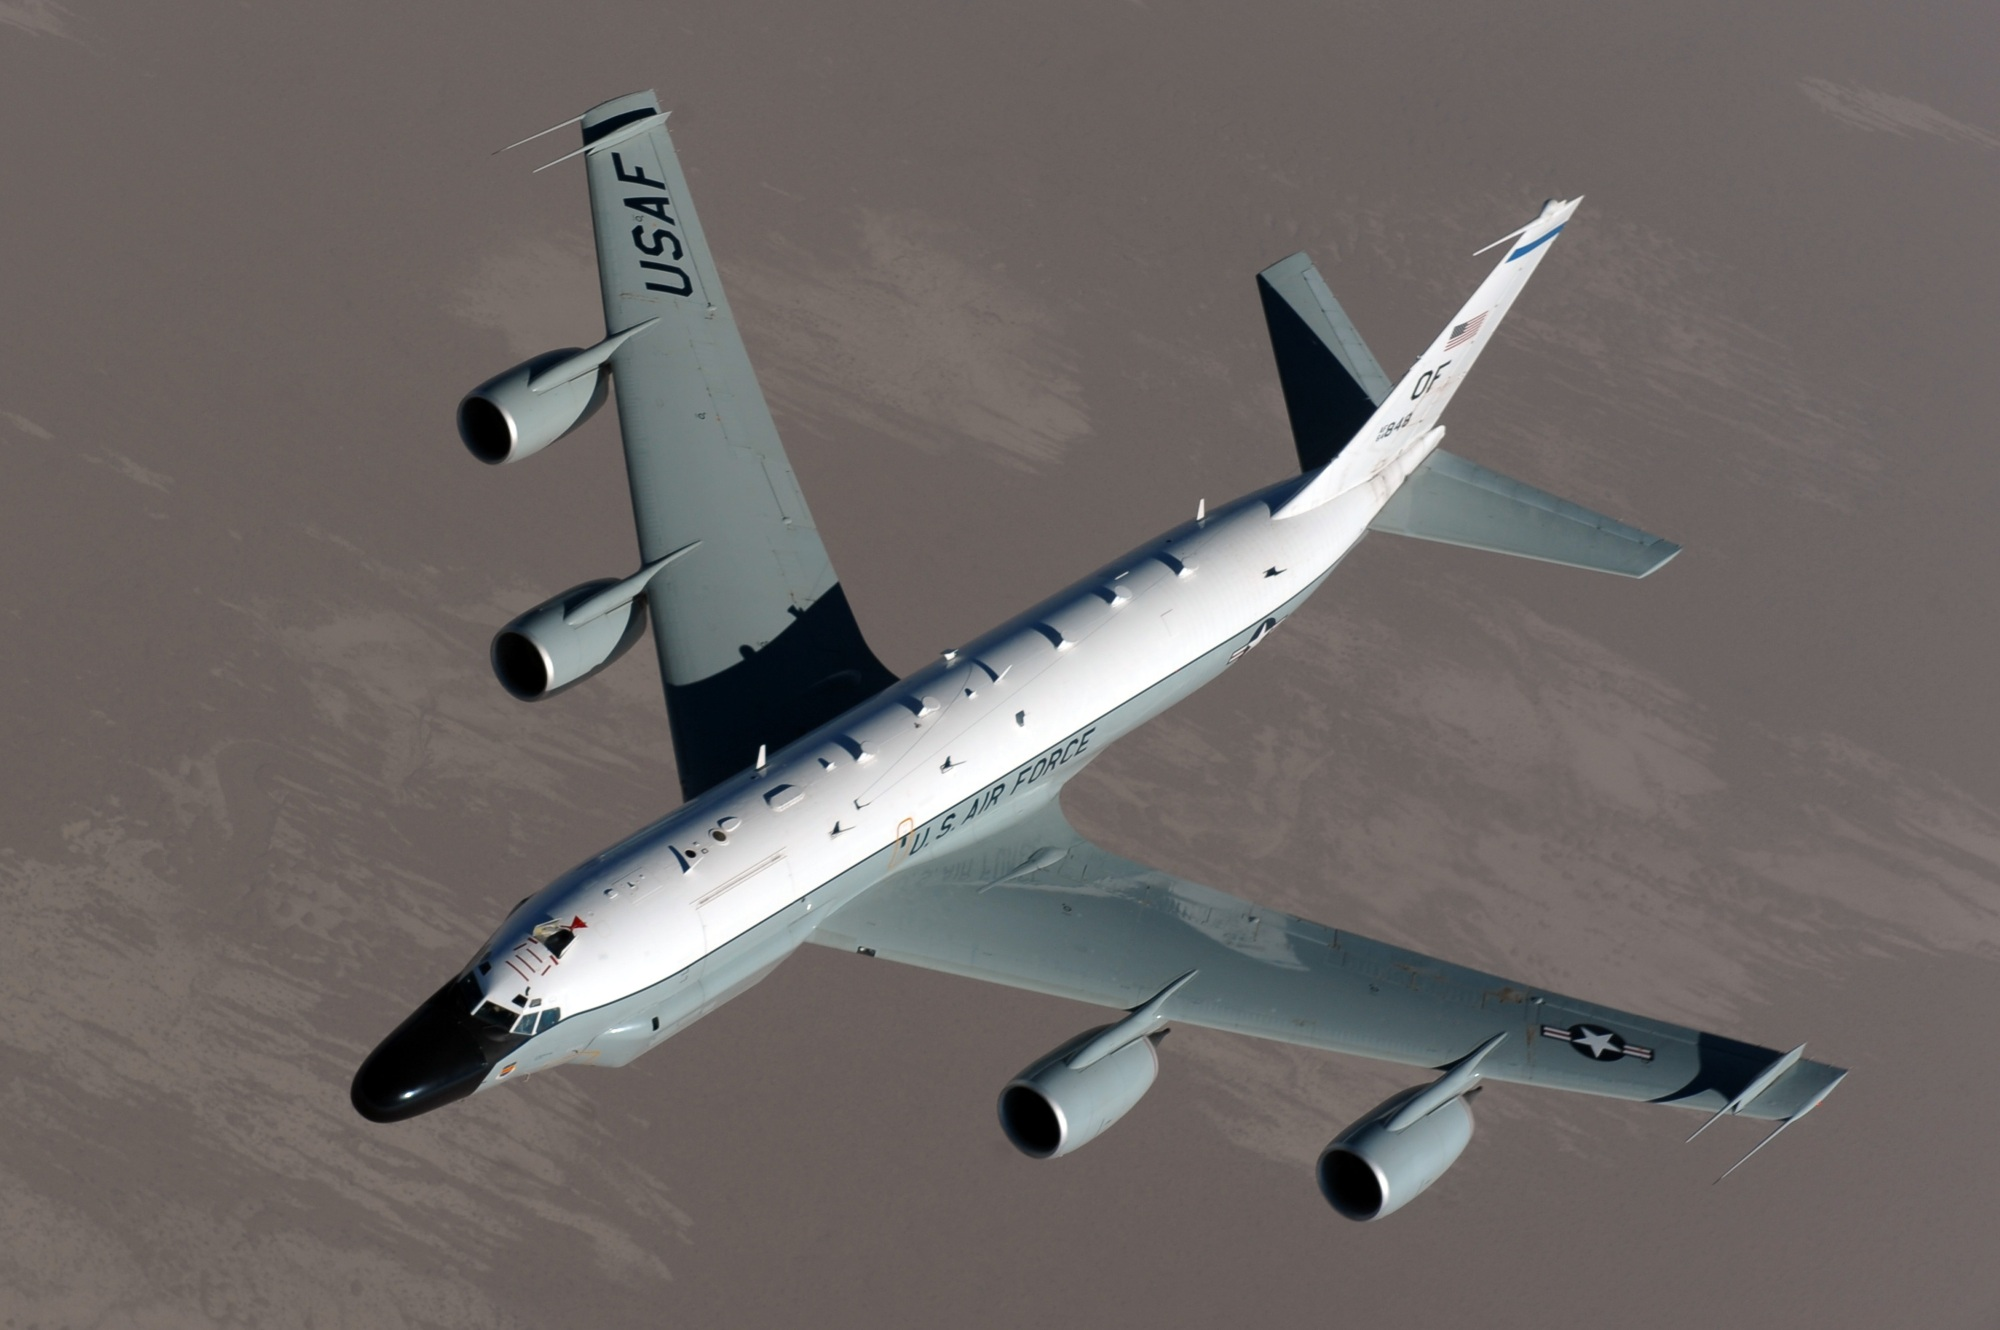 Russian-Jet-Nearly-Collides-with-US-Spy-Jet-Over-Europe